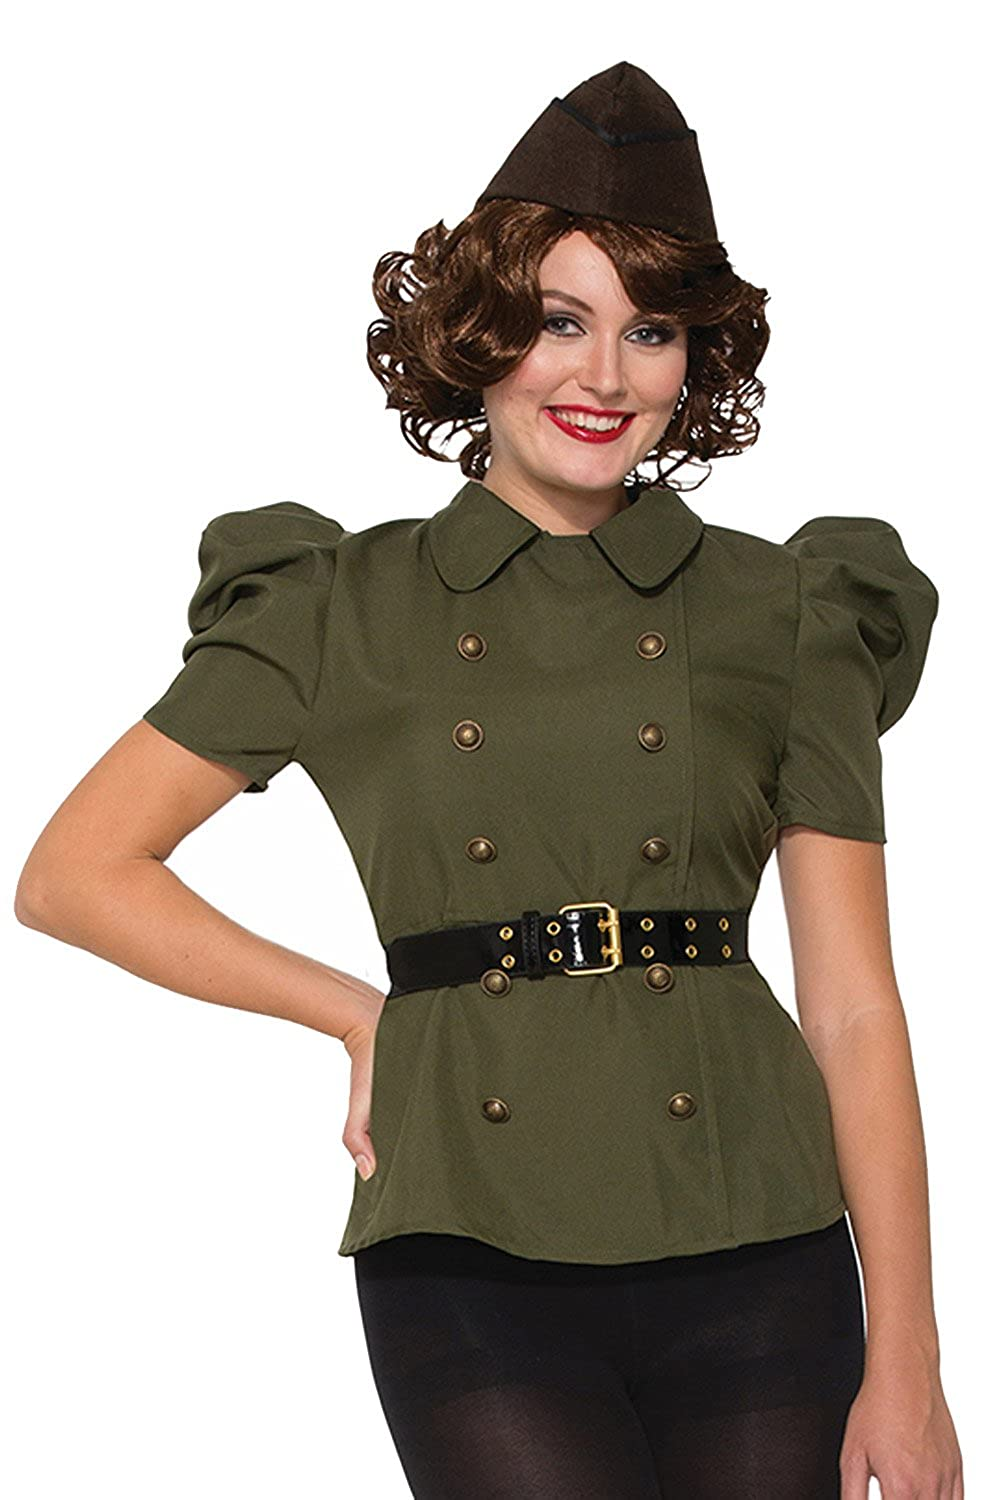 Agent Peggy Carter Costume, Dress, Hats Bombshells Adult Costume- $24.47 AT vintagedancer.com